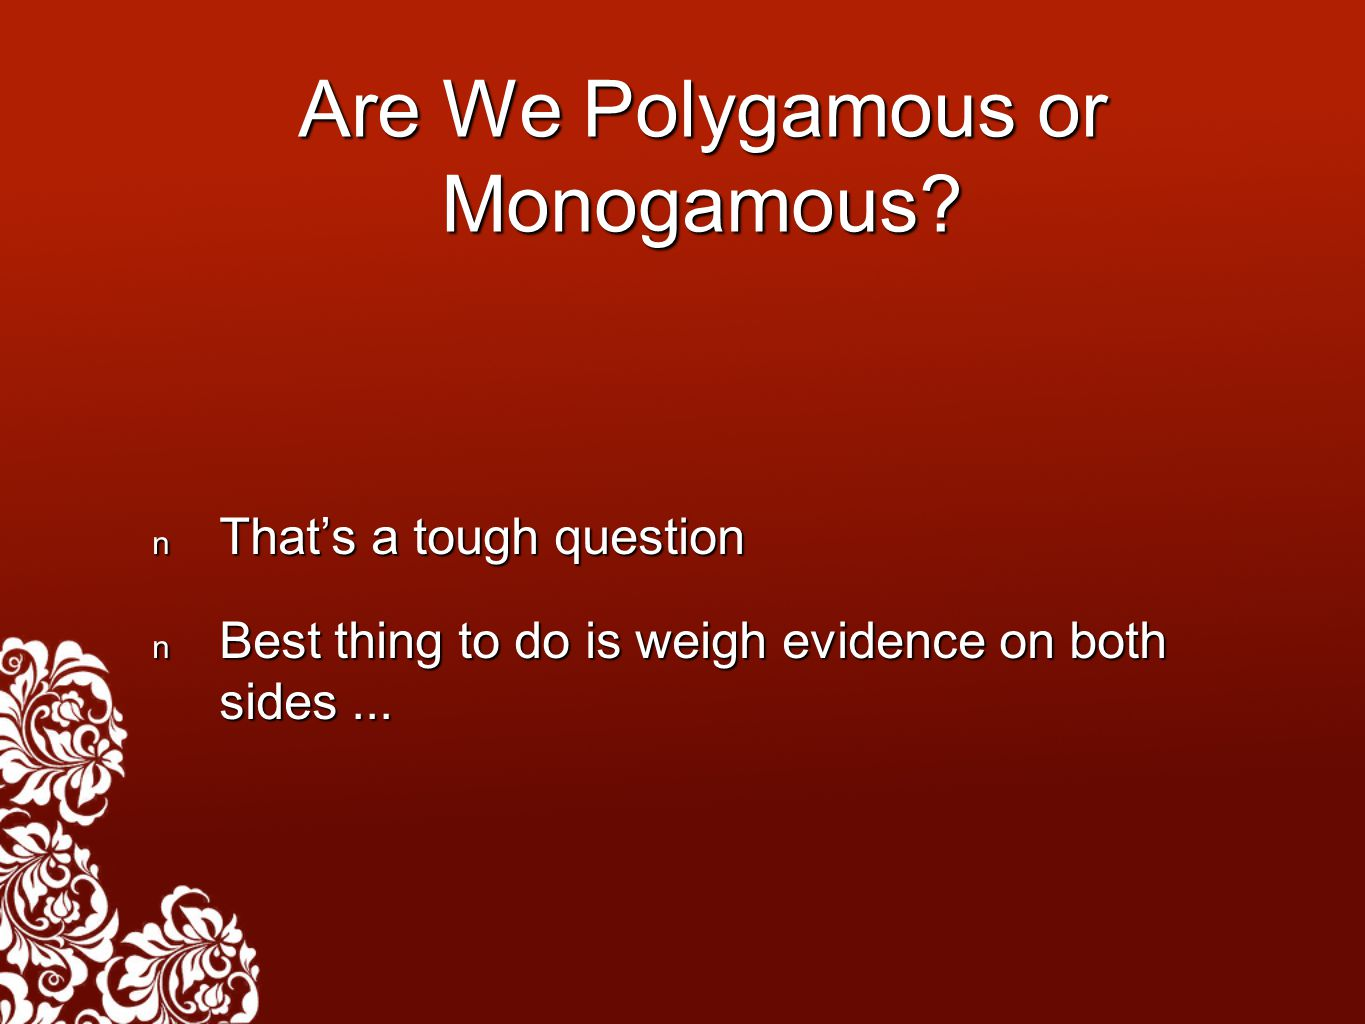 Are We Polygamous or Monogamous? That's a tough question That's a tough question Best thing to do is weigh evidence on both sides... Best thing to do